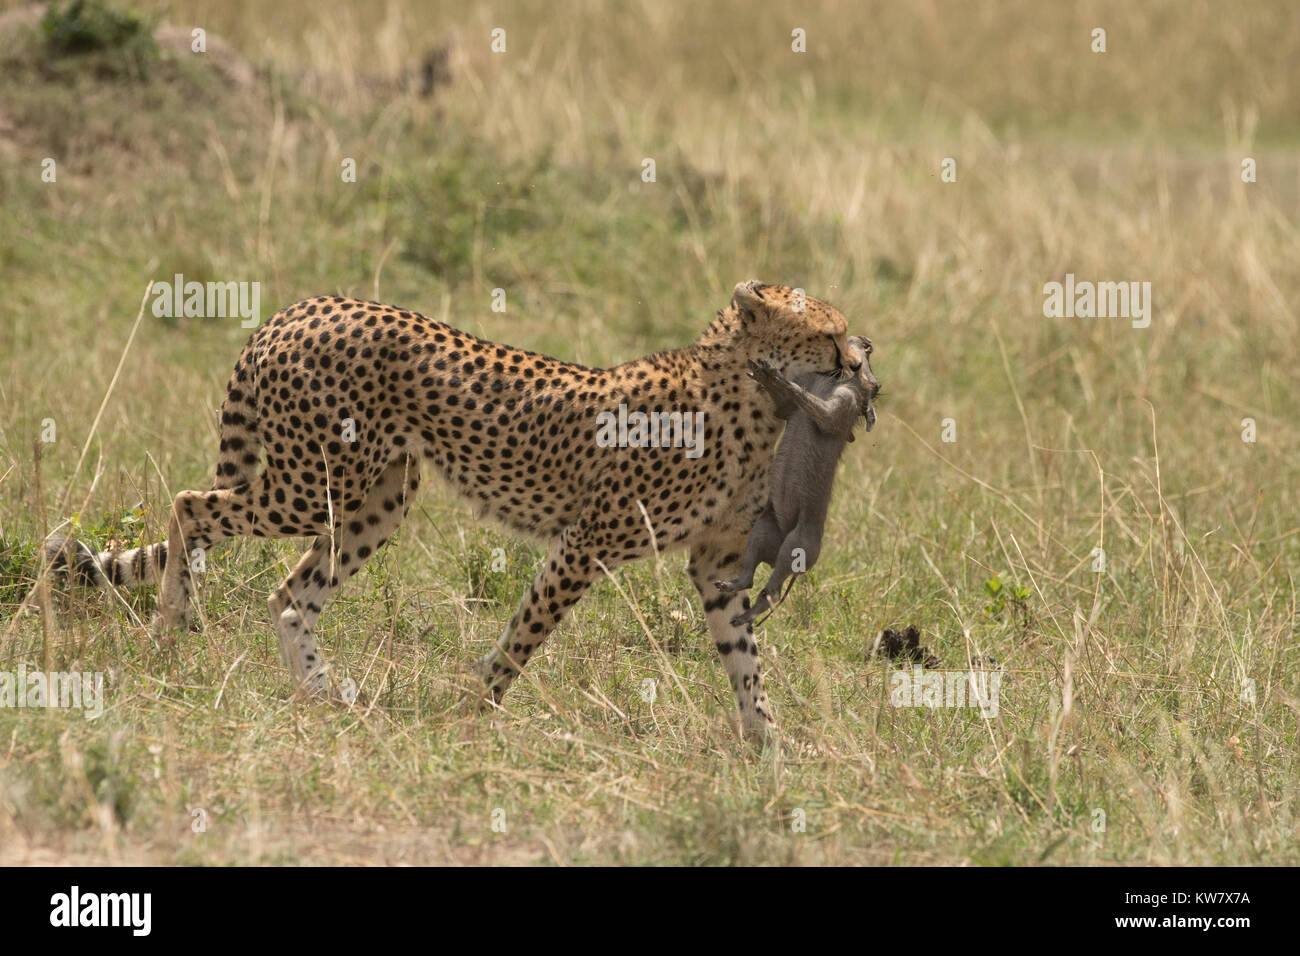 Cheetah (Acinonyx jubatus) cub carrying a baby warthog (Phacochoerus africans) just after catching it Stock Photo